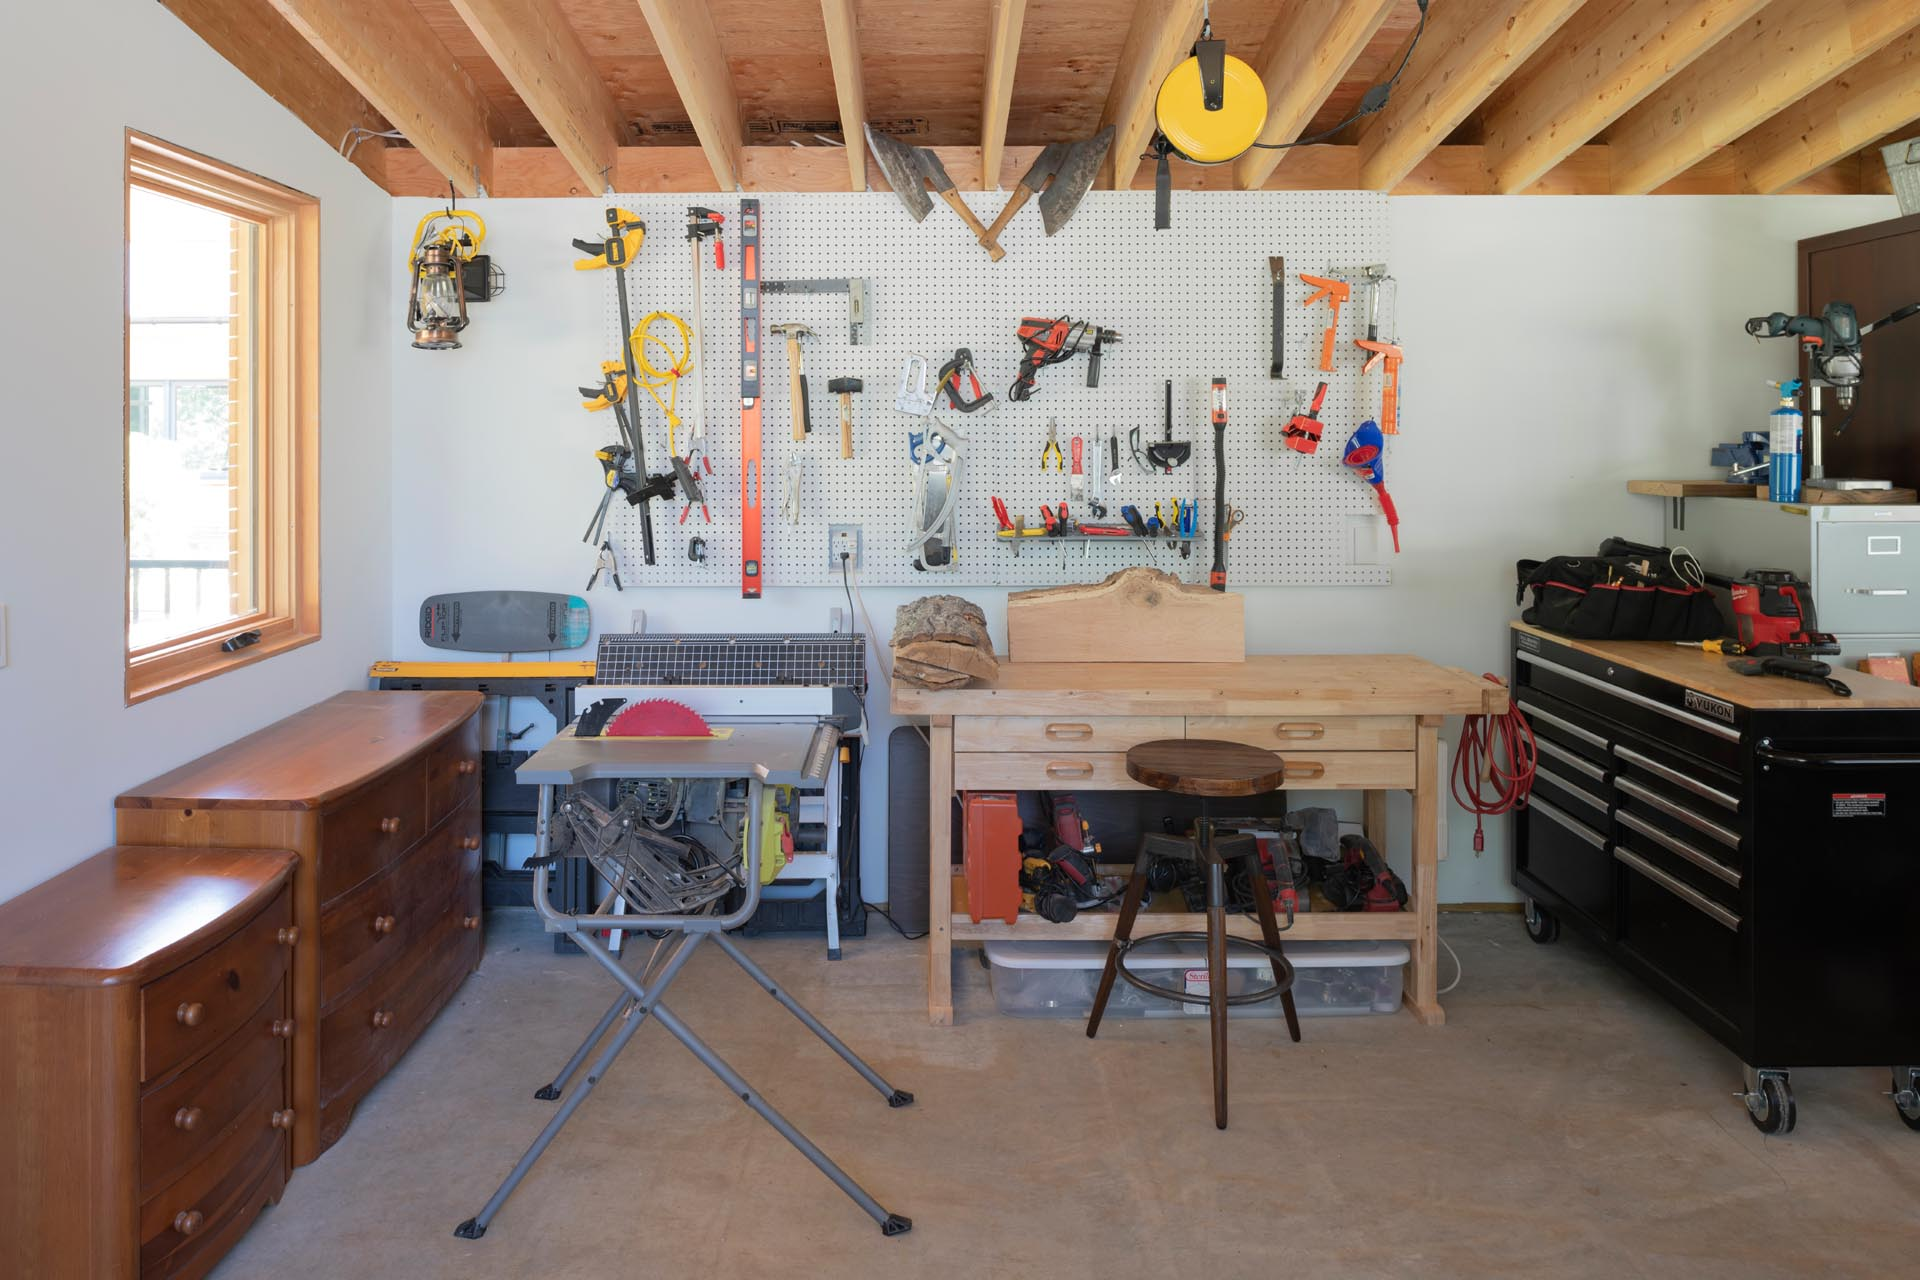 A large garden and carpentry workshop has room for a workbench, furniture and tool storage, and an indoor potting area with a large sink.